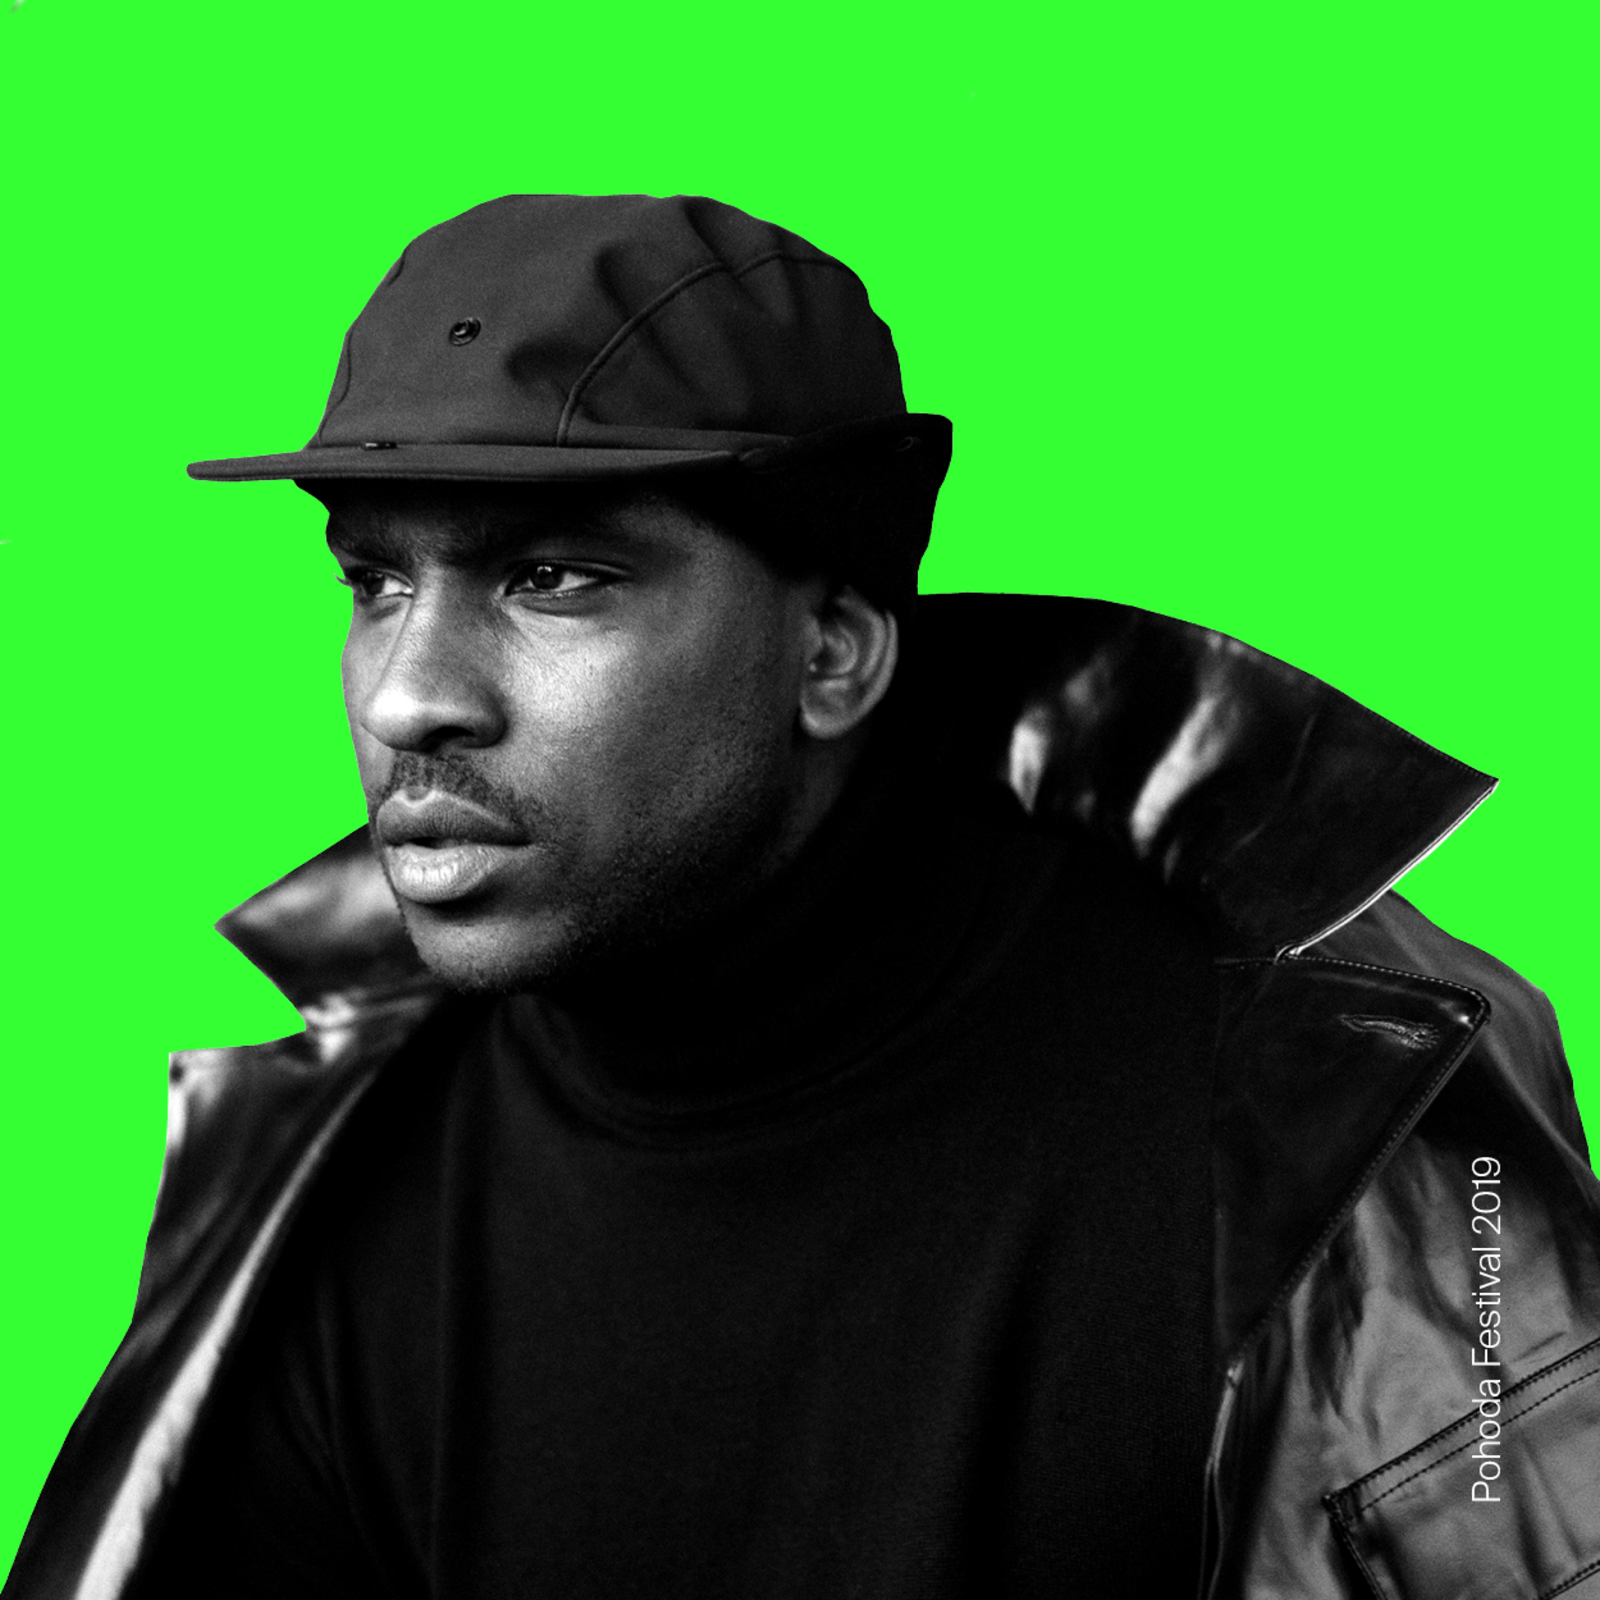 118275a3 Pohoda 2019 will feature also the British MC/rapper and the grime star,  Skepta. He and his brother Jamie (Jme) founded collective and label Boy  Better Know.